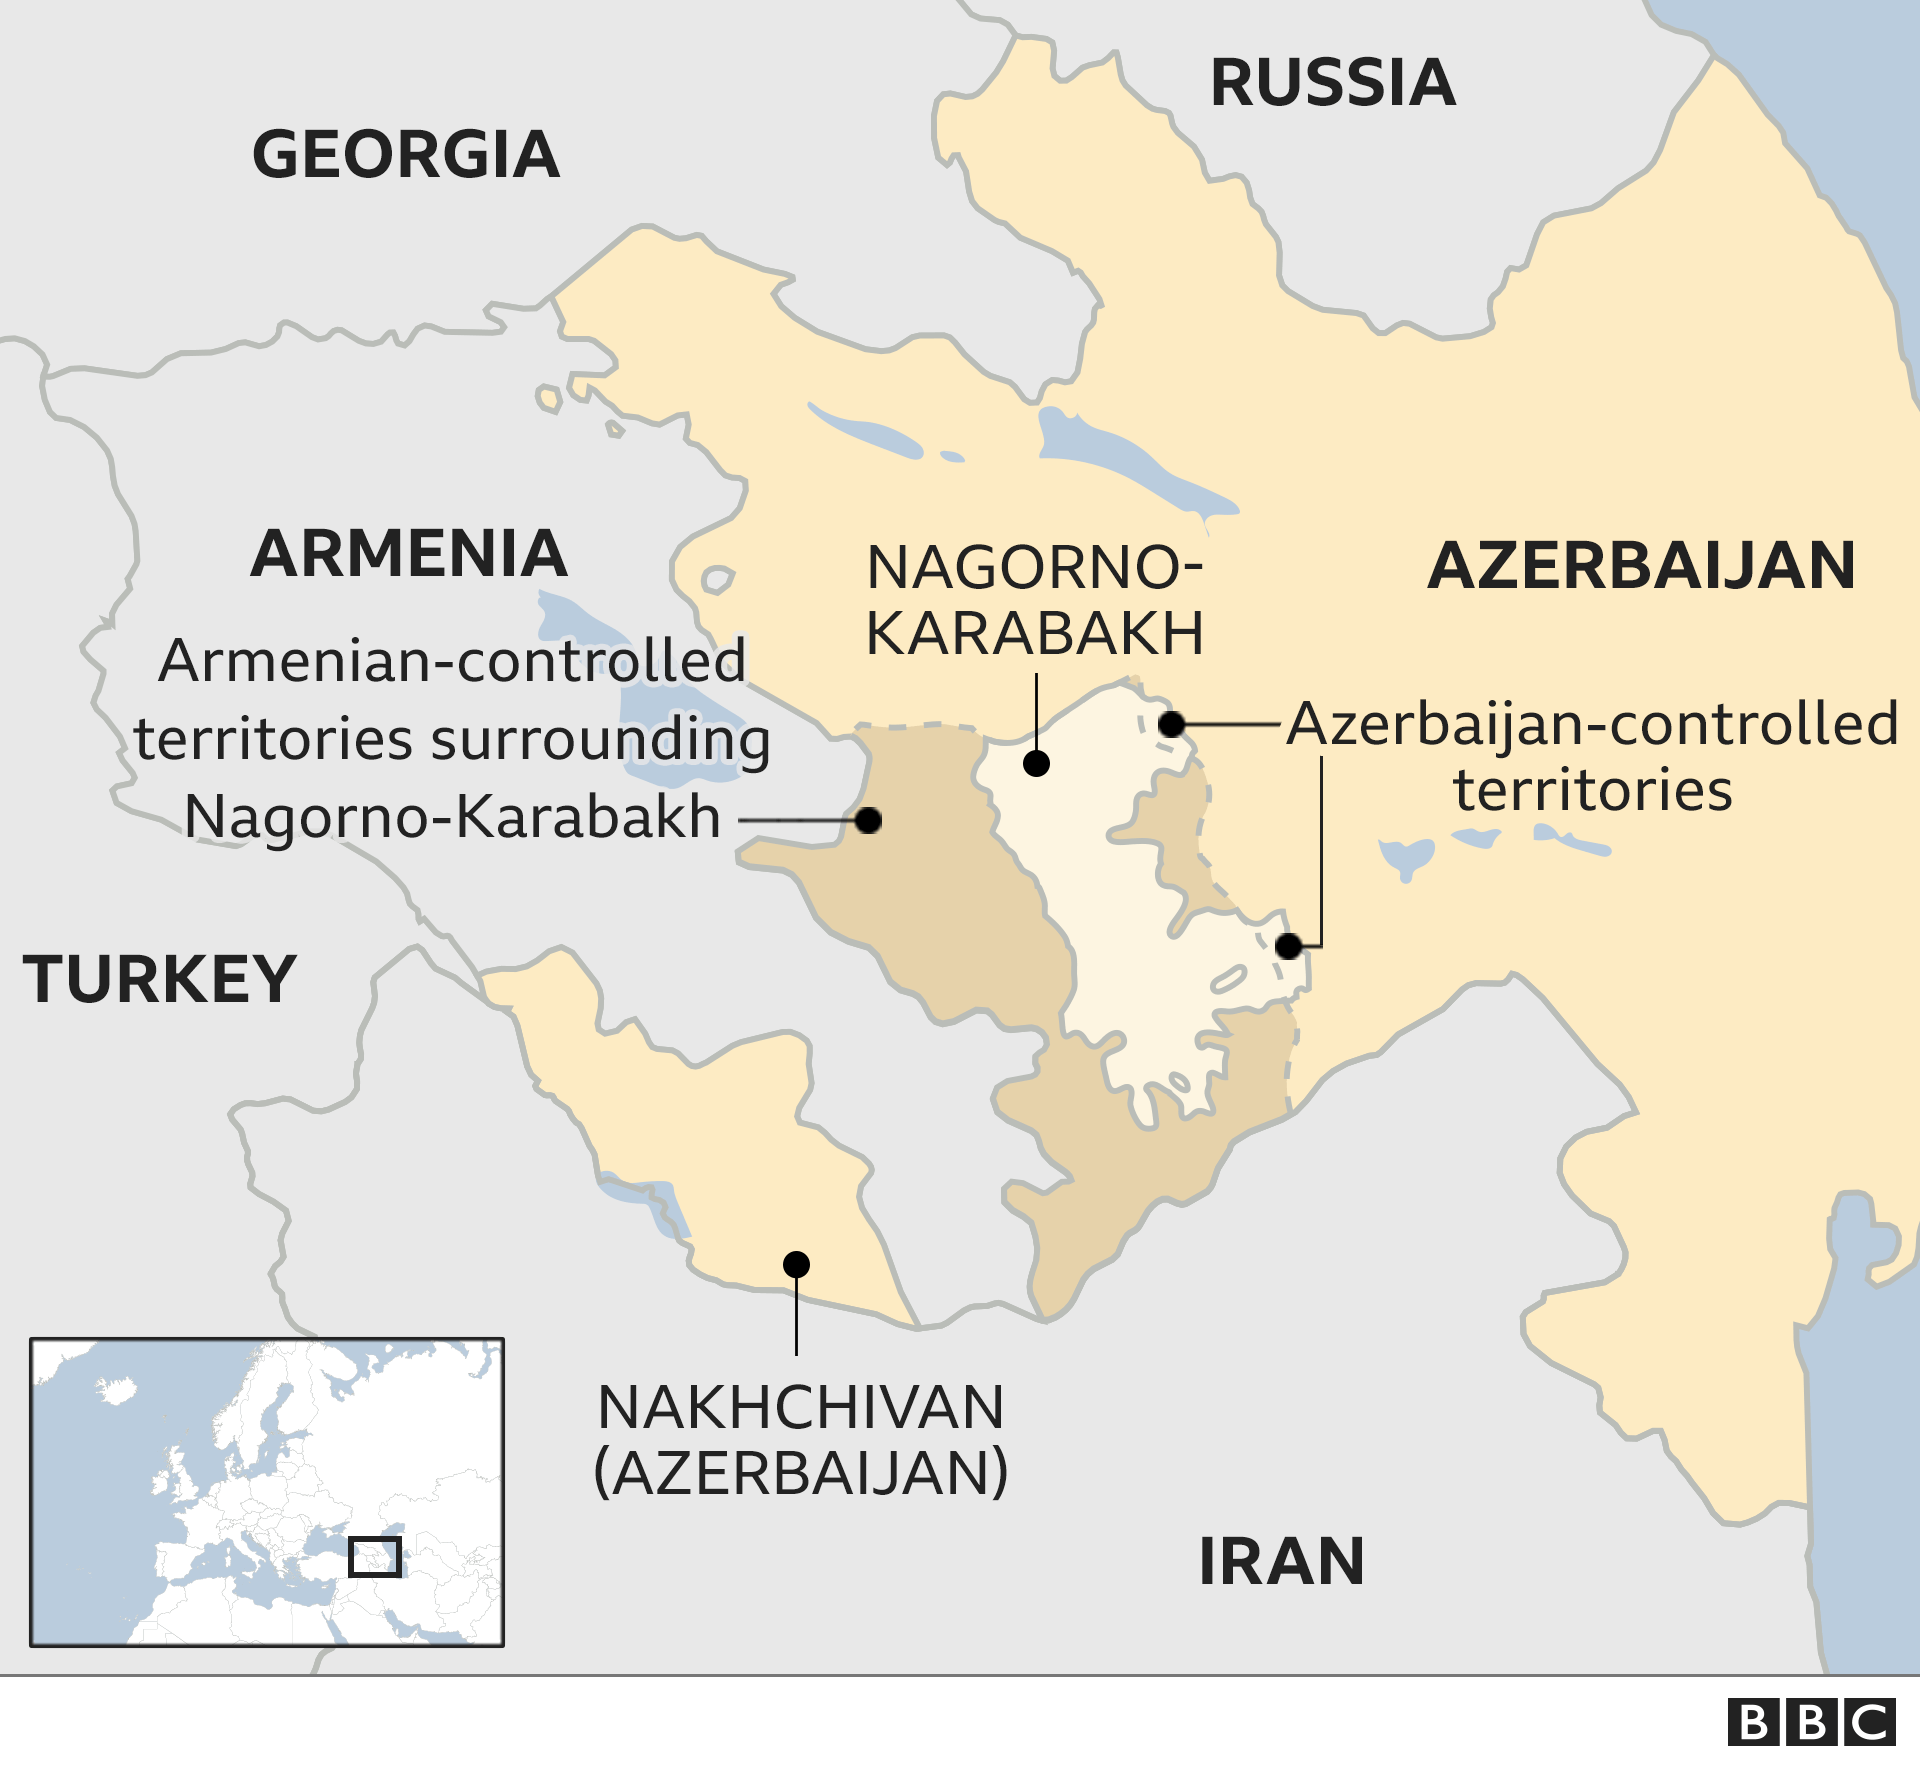 Nagorno-Karabakh: Armenia and Azerbaijan shaky ceasefire in force thumbnail